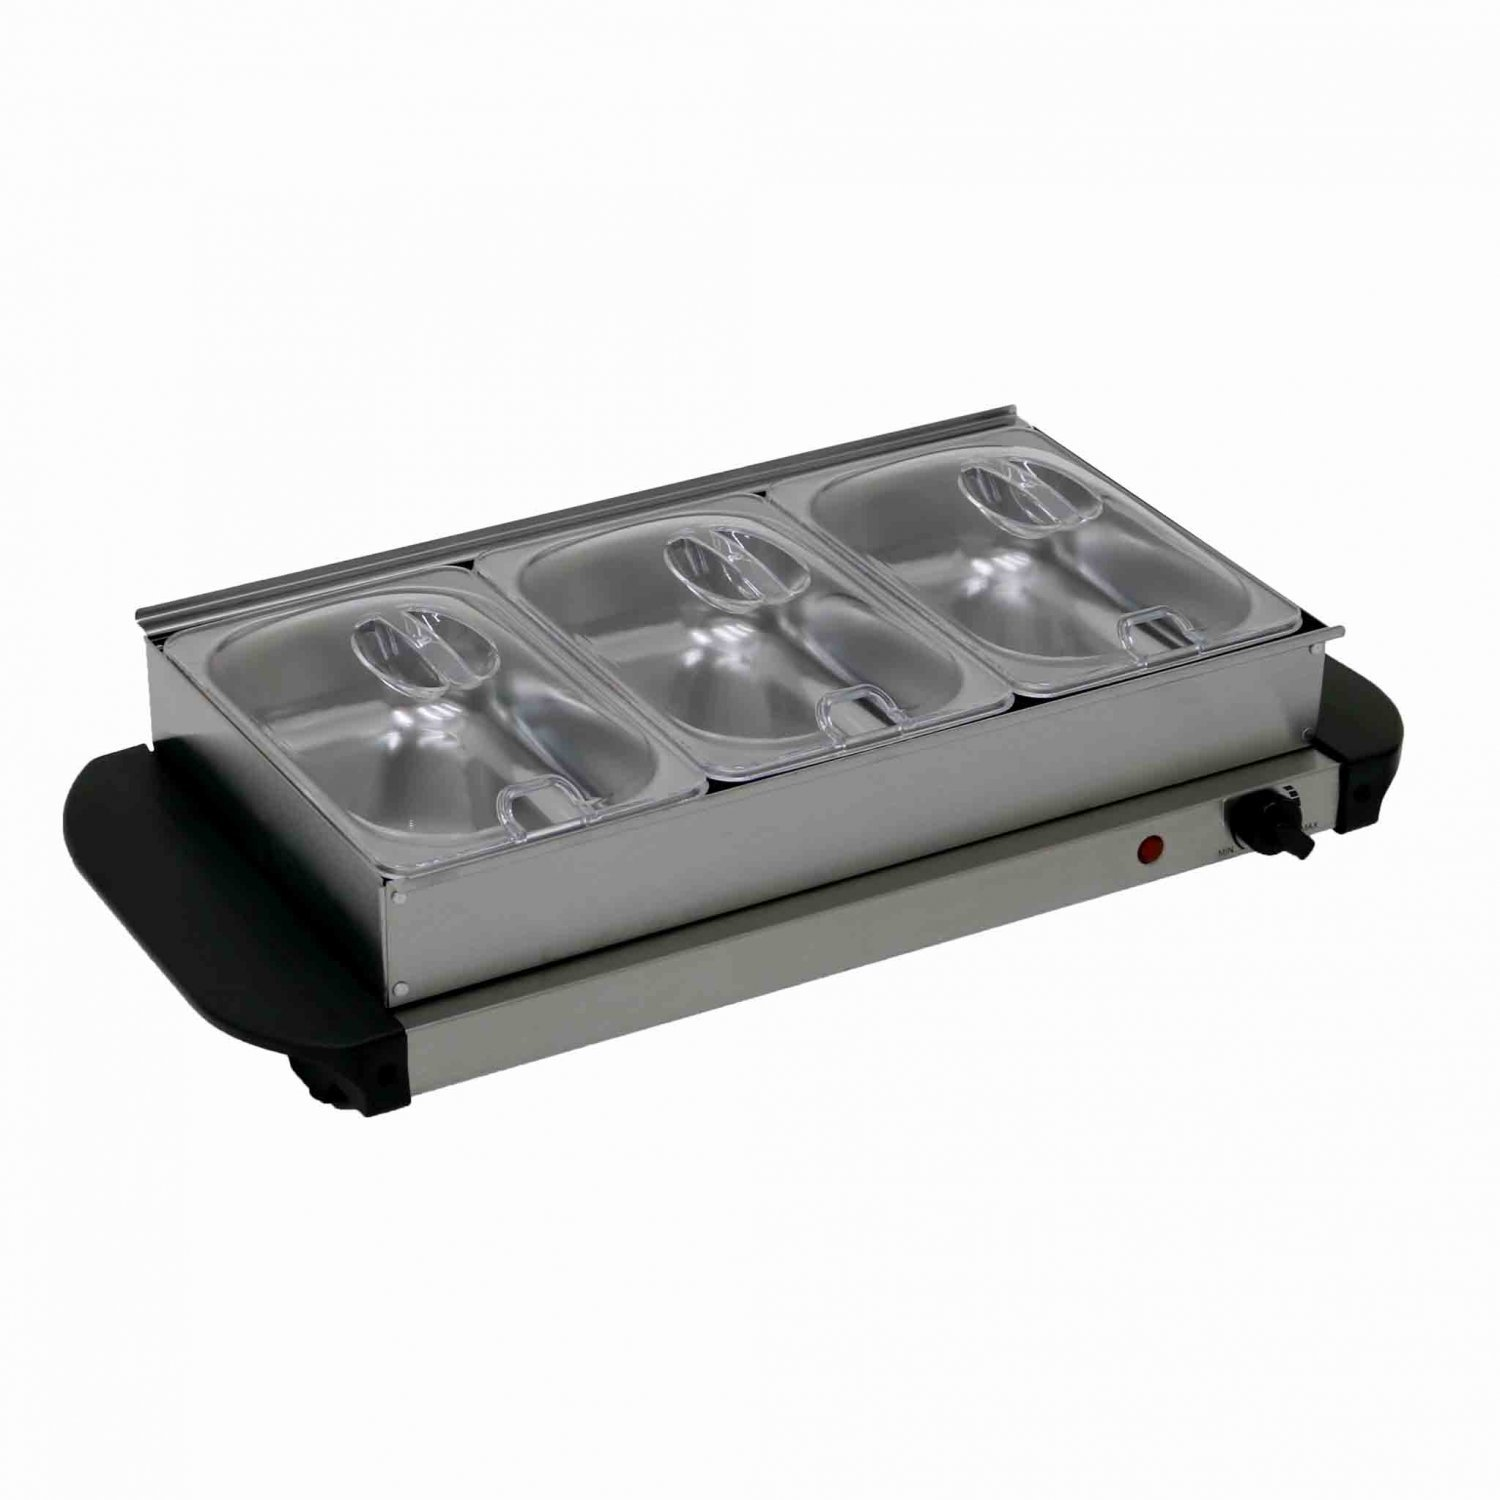 Fabulous Stainless Steel Electric 3 Pan Buffet Food Warmer Hot Plate Tray Interior Design Ideas Clesiryabchikinfo